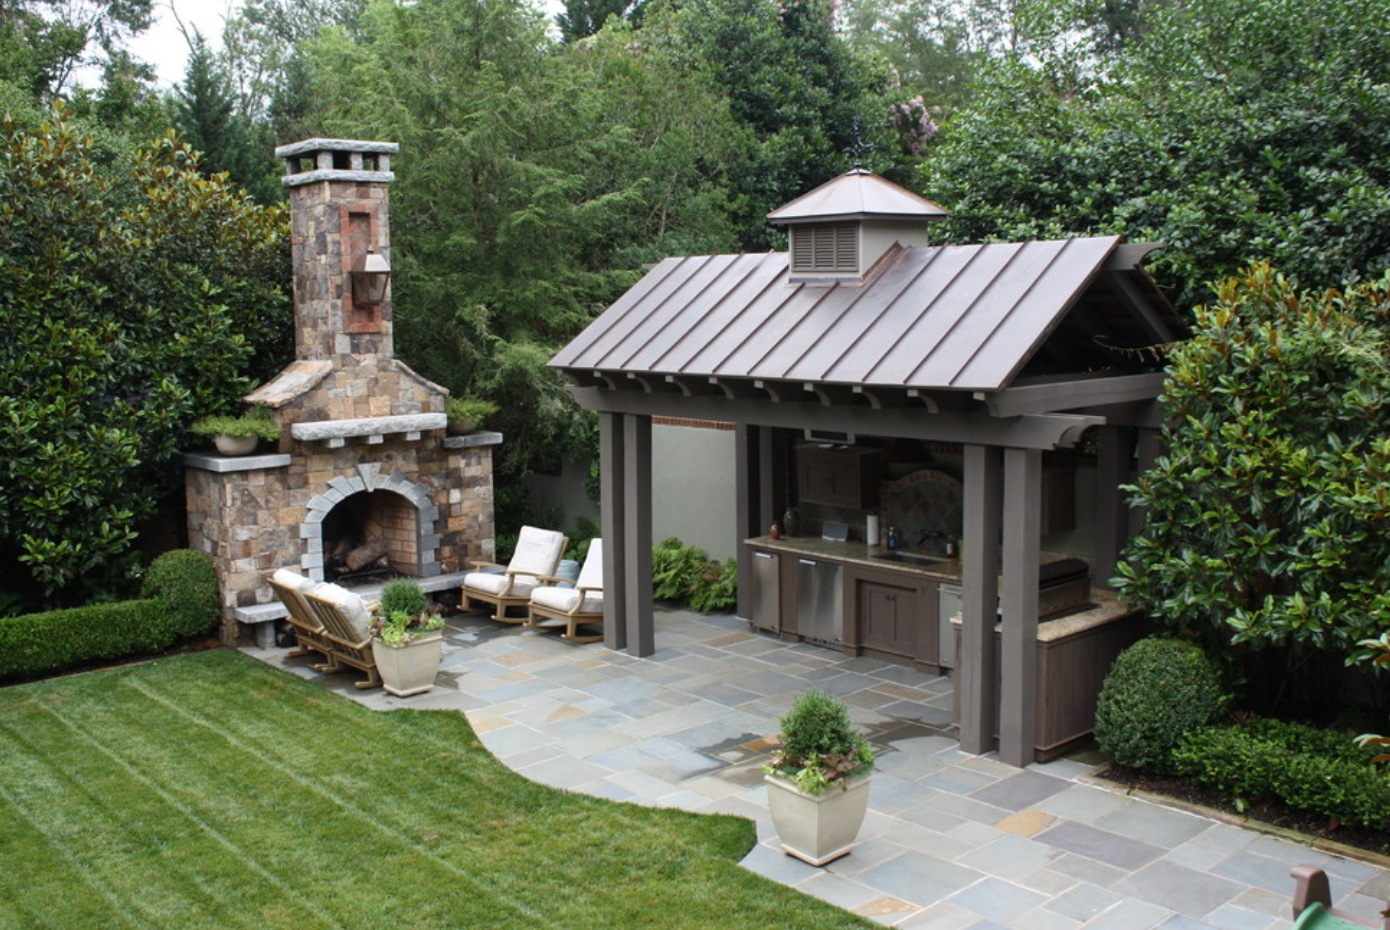 Best Landscape Design Ideas: Decorating Your Courtyard. Nice barbecue zone